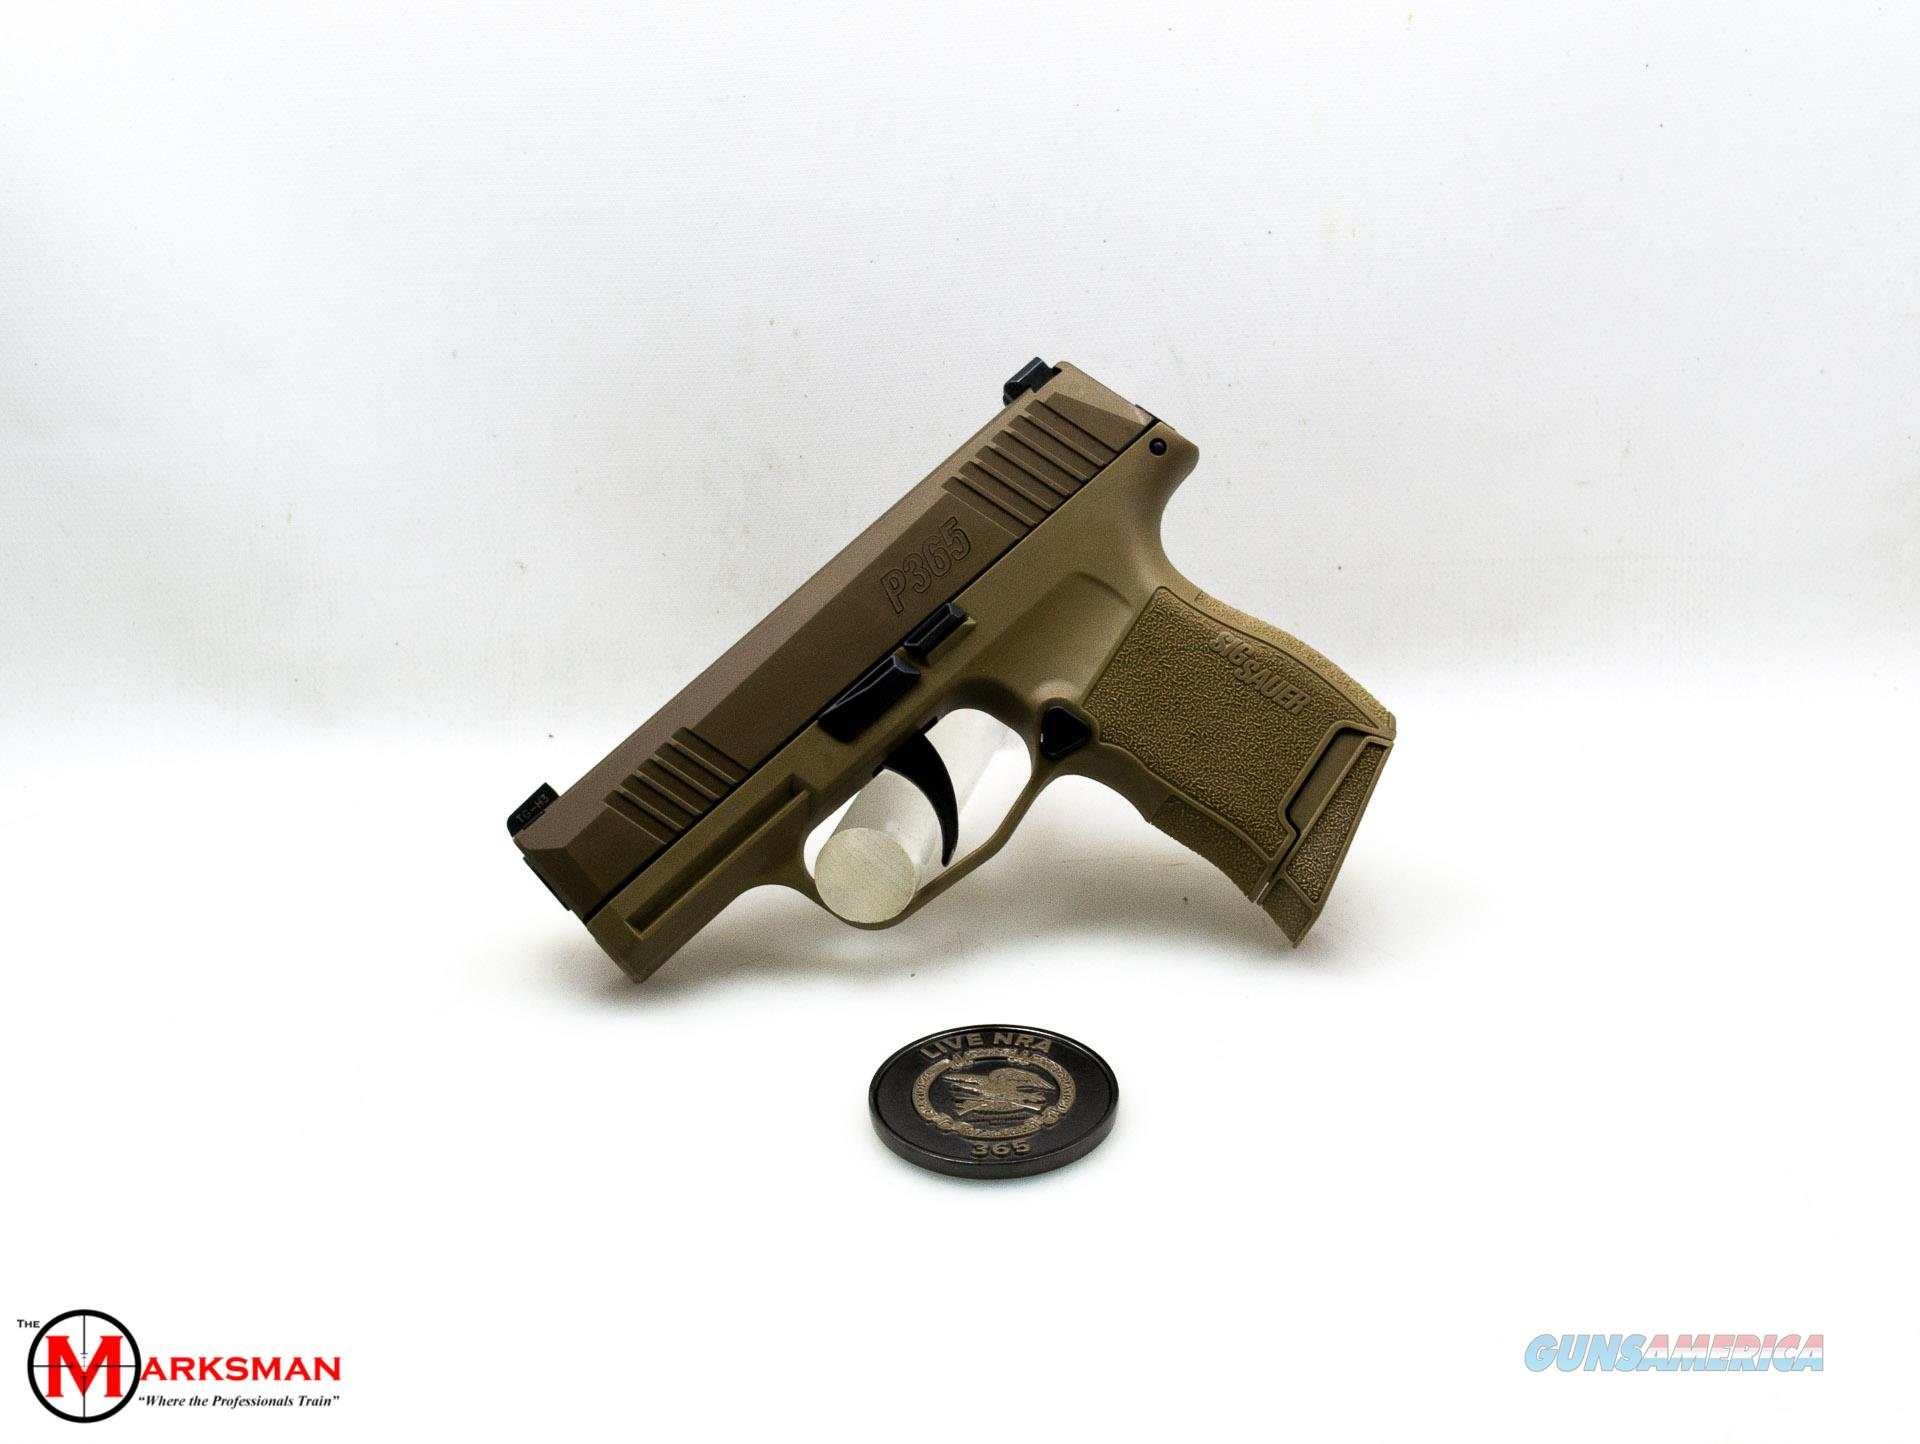 Sig Sauer P365 NRA, 9mm, Flat Dark Earth, Lipsey's Exclusive NEW  Guns > Pistols > Sig - Sauer/Sigarms Pistols > P365